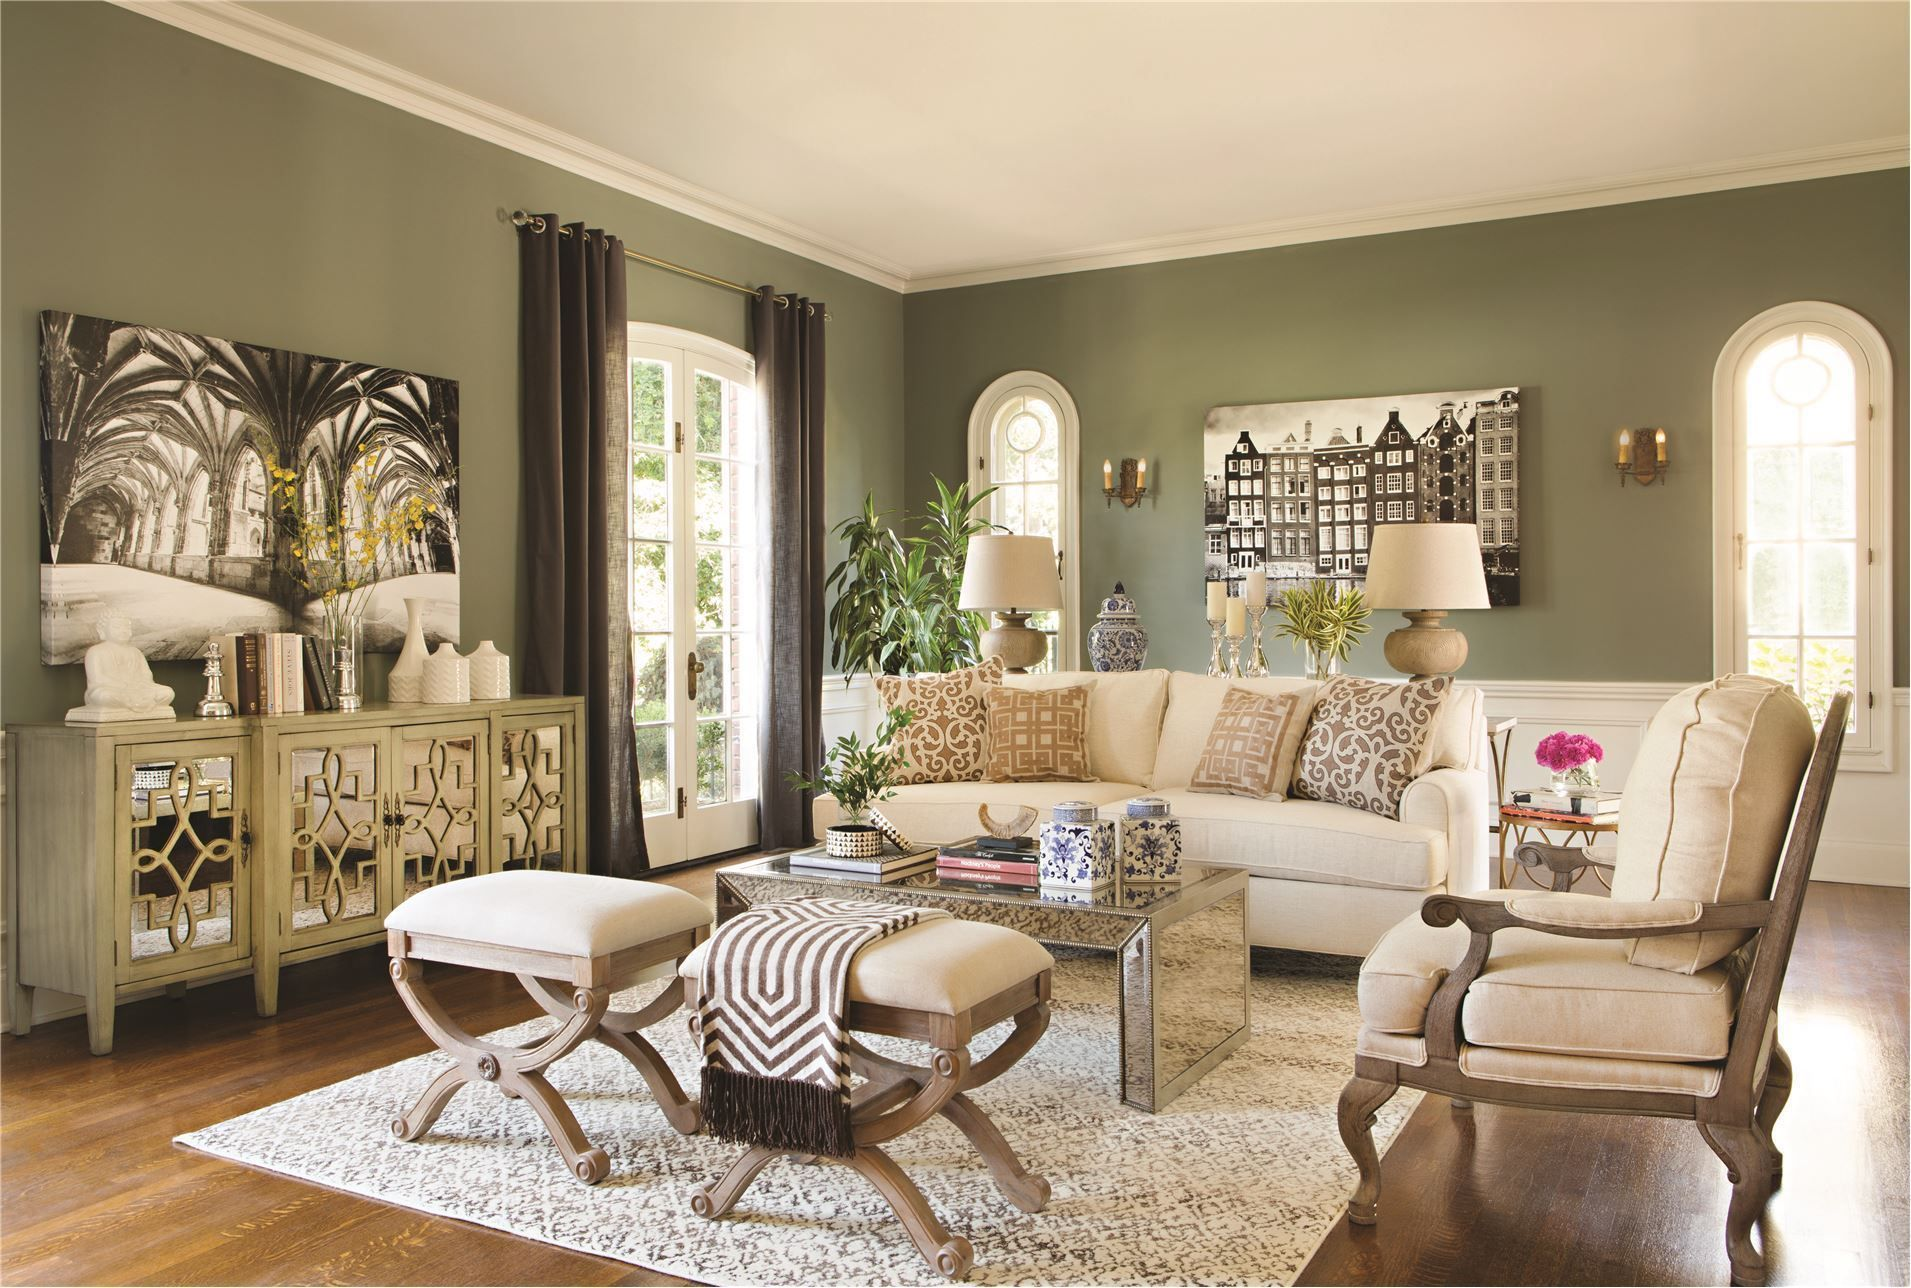 514GREENWITHENVY Paint colors Pinterest